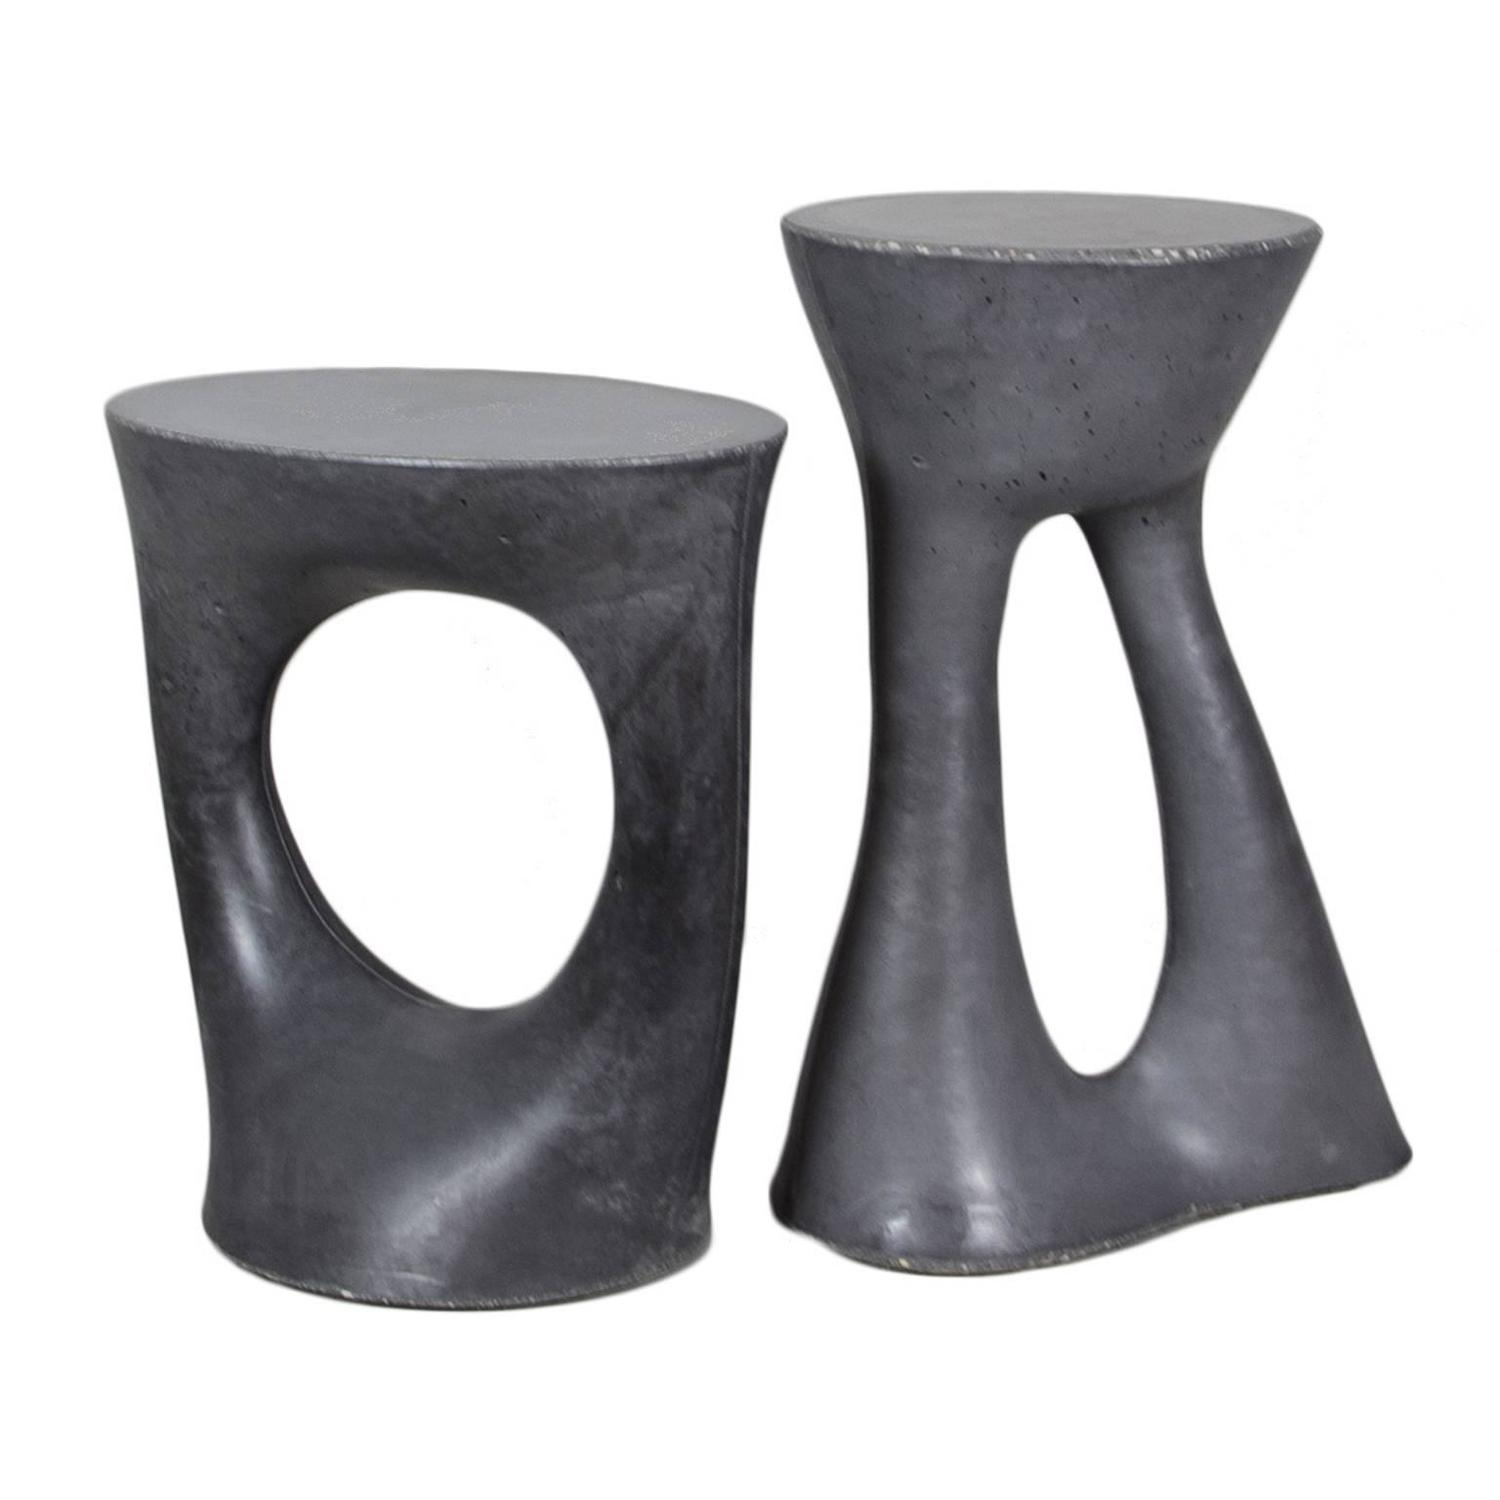 Modern black side table - Pair Of Charcoal Kreten Side Tables From Souda Black Modern Concrete End Table For Sale At 1stdibs